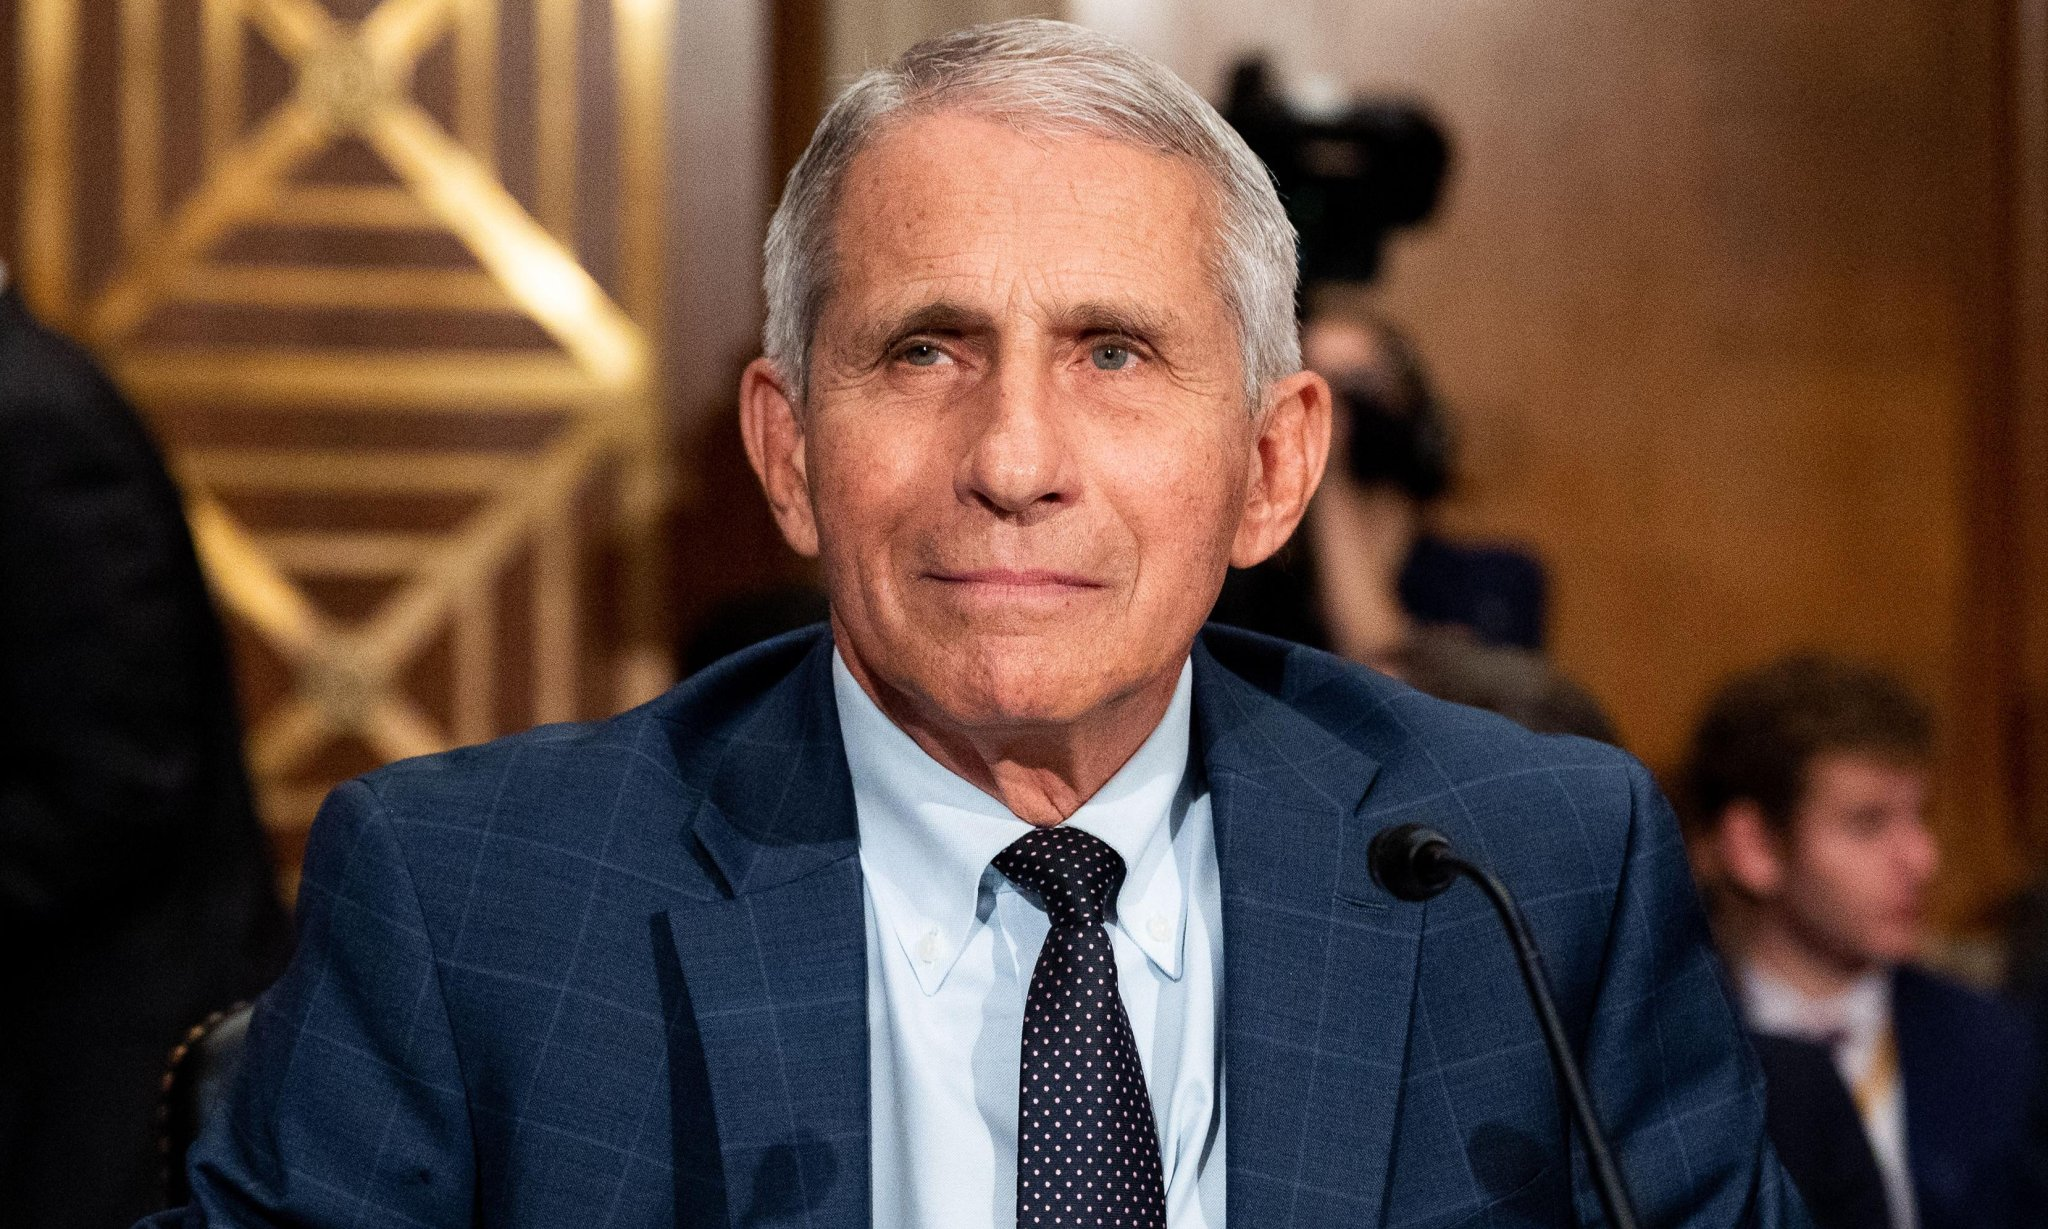 Fauci says health officials considering mask guidance revision for vaccinated